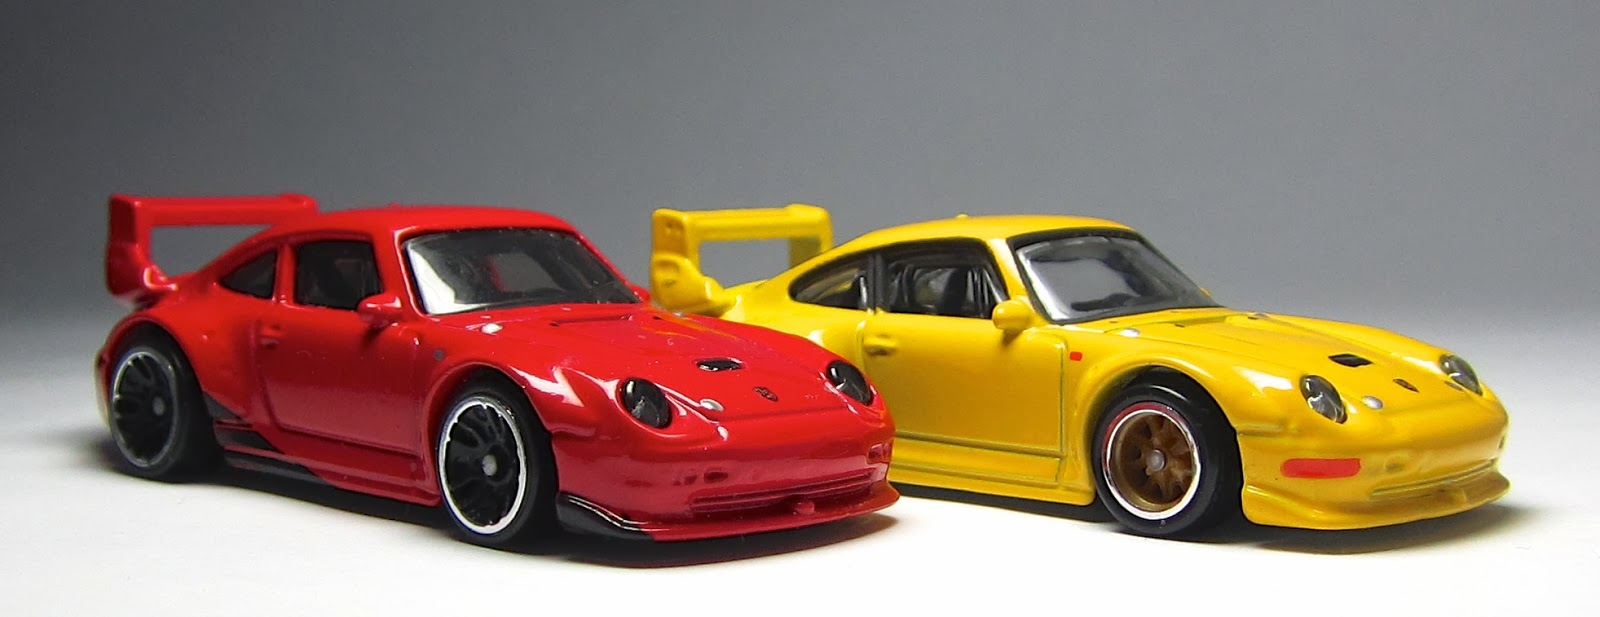 first look 2014 hot wheels porsche 993 gt2 thelamleygroup. Black Bedroom Furniture Sets. Home Design Ideas